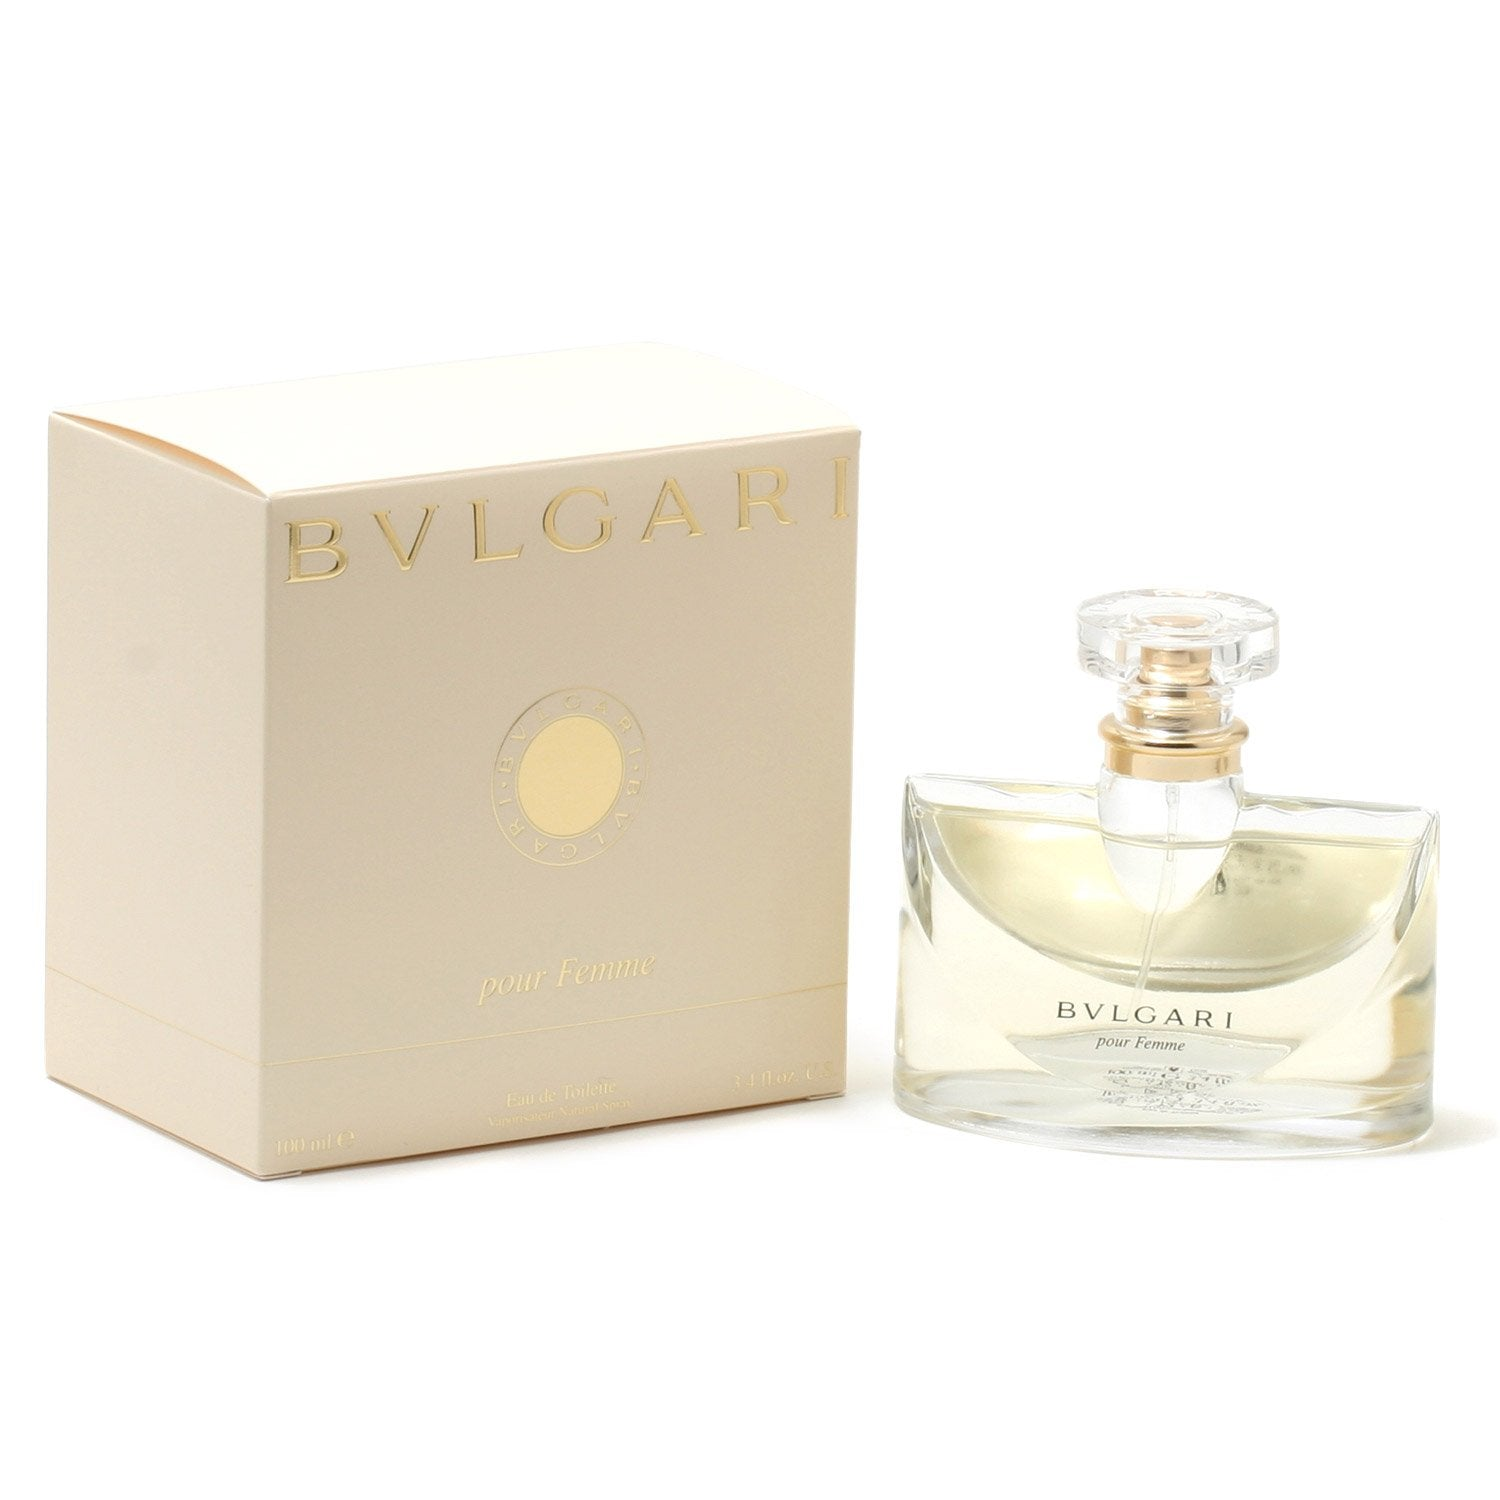 Perfume - BVLGARI FOR WOMEN - EAU DE TOILETTE SPRAY